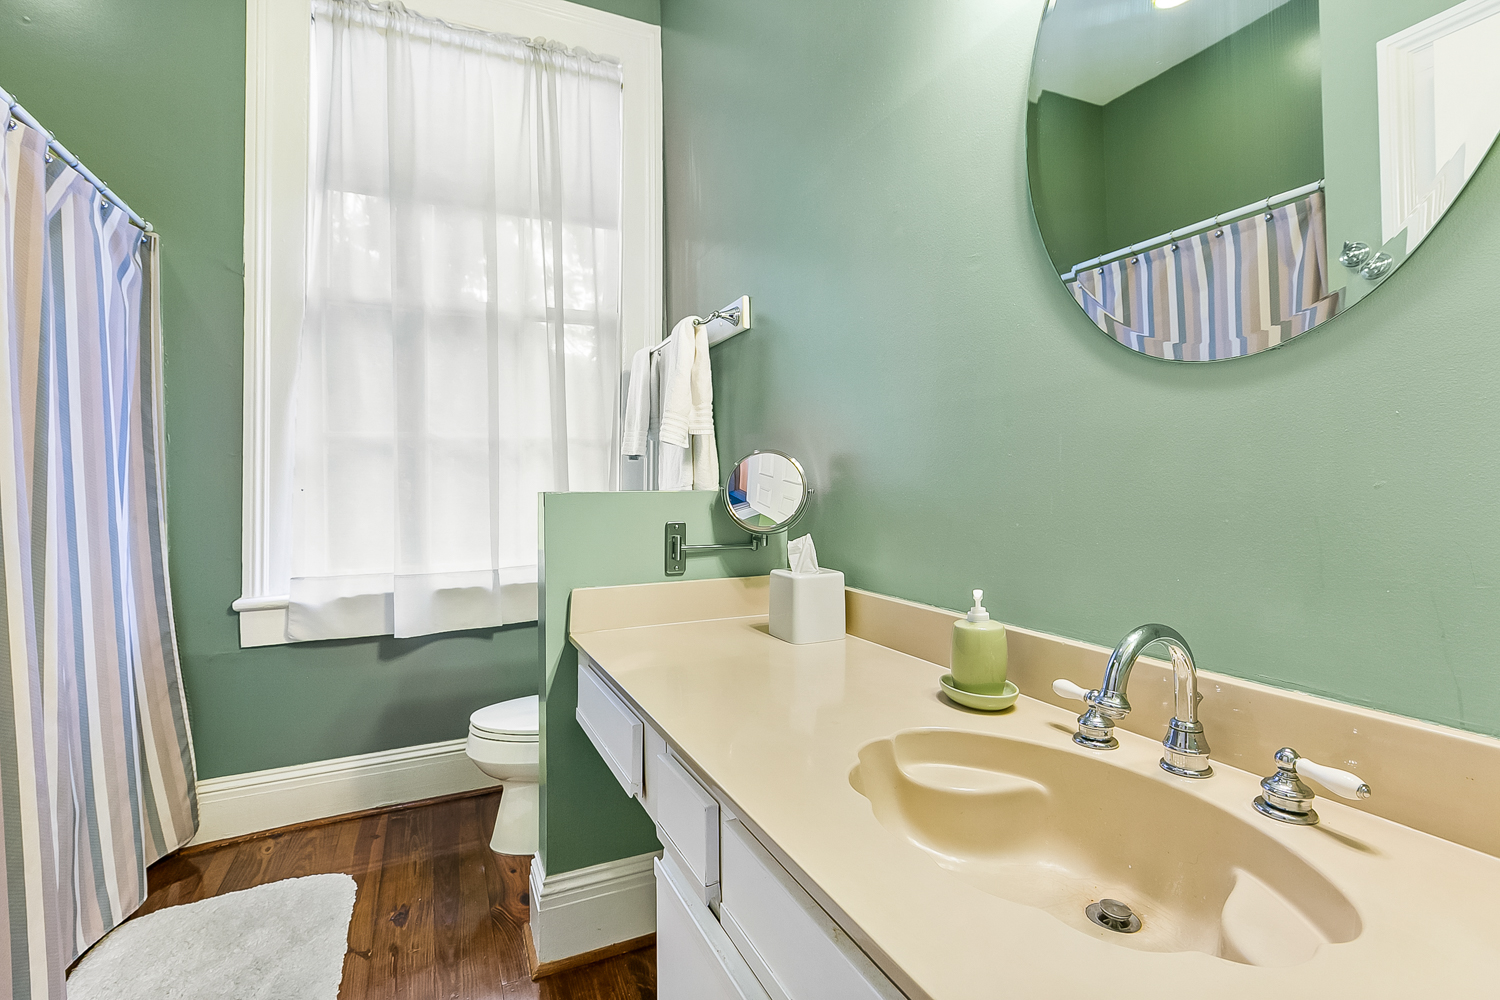 Garden District, House, 2 beds, 2.5 baths, $3500 per month New Orleans Rental - devie image_7